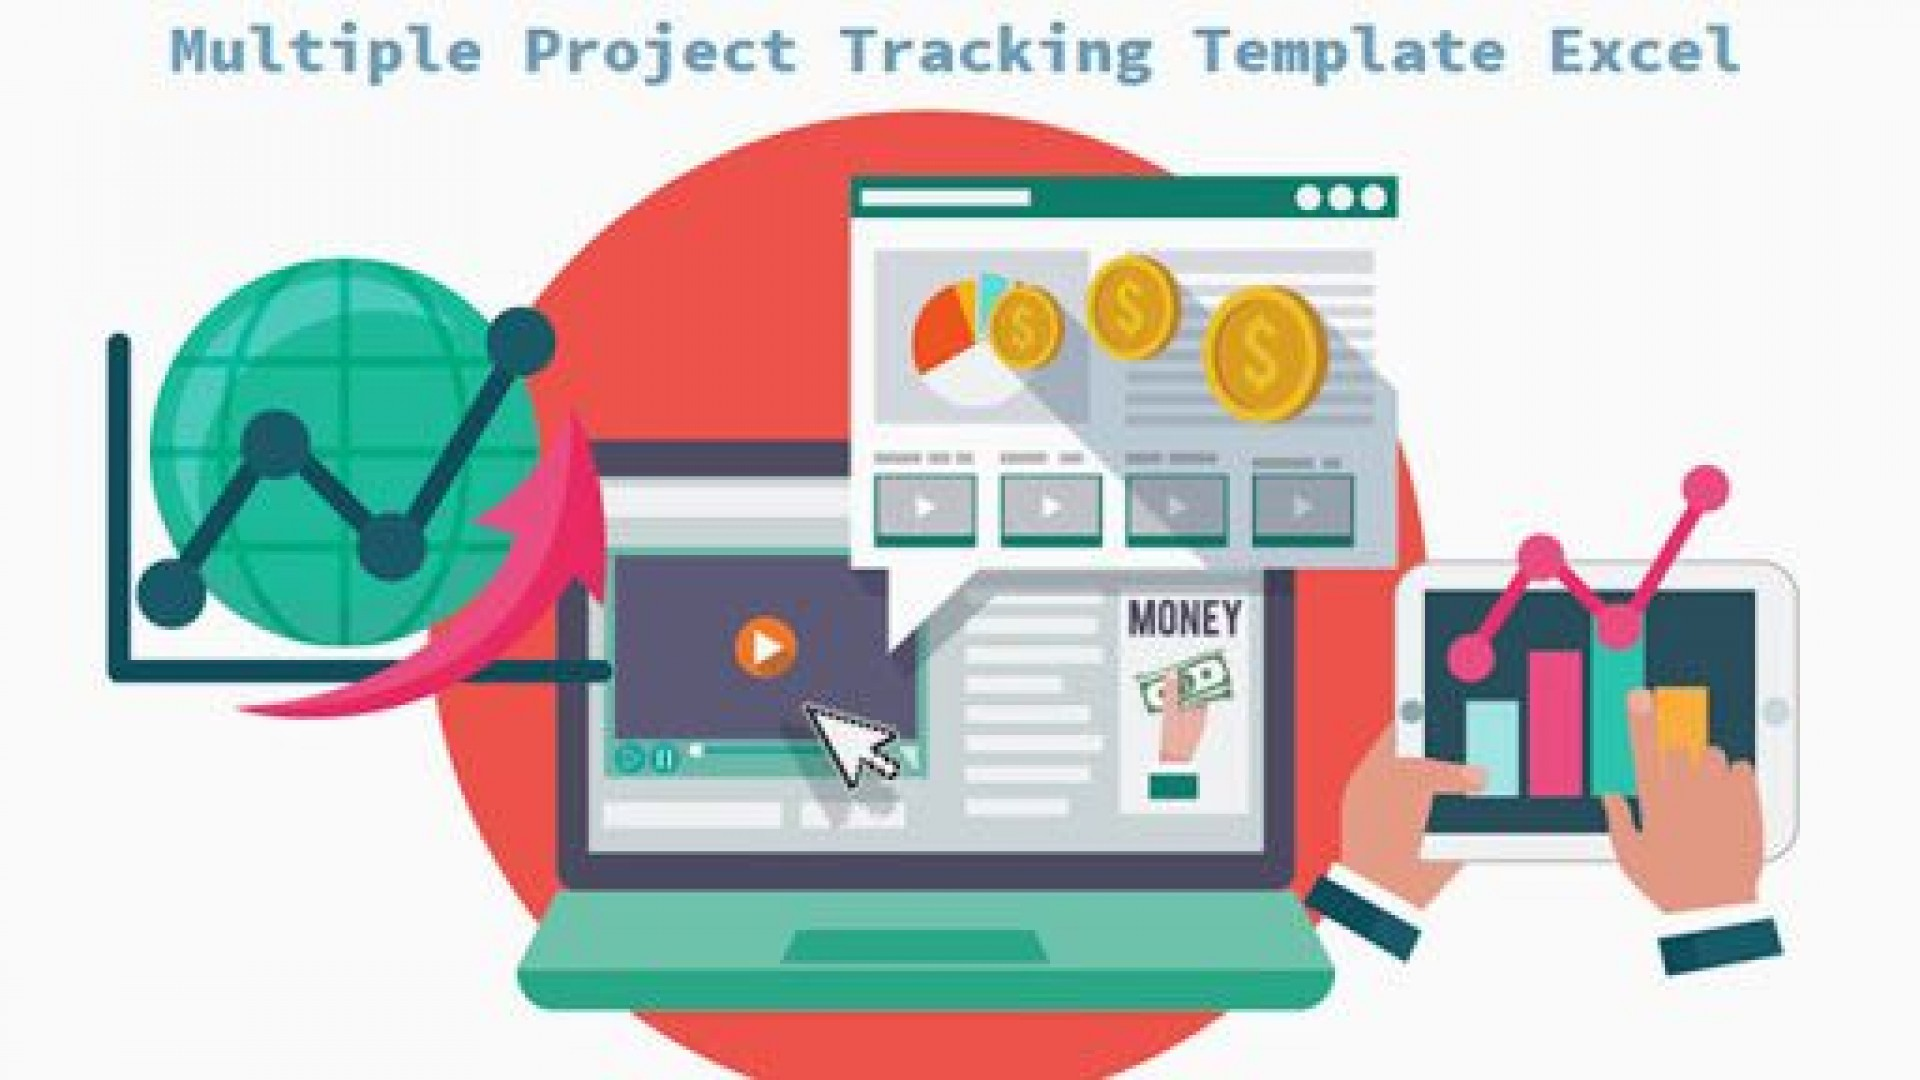 010 Simple Multiple Project Cost Tracking Template Excel Photo  Budget1920